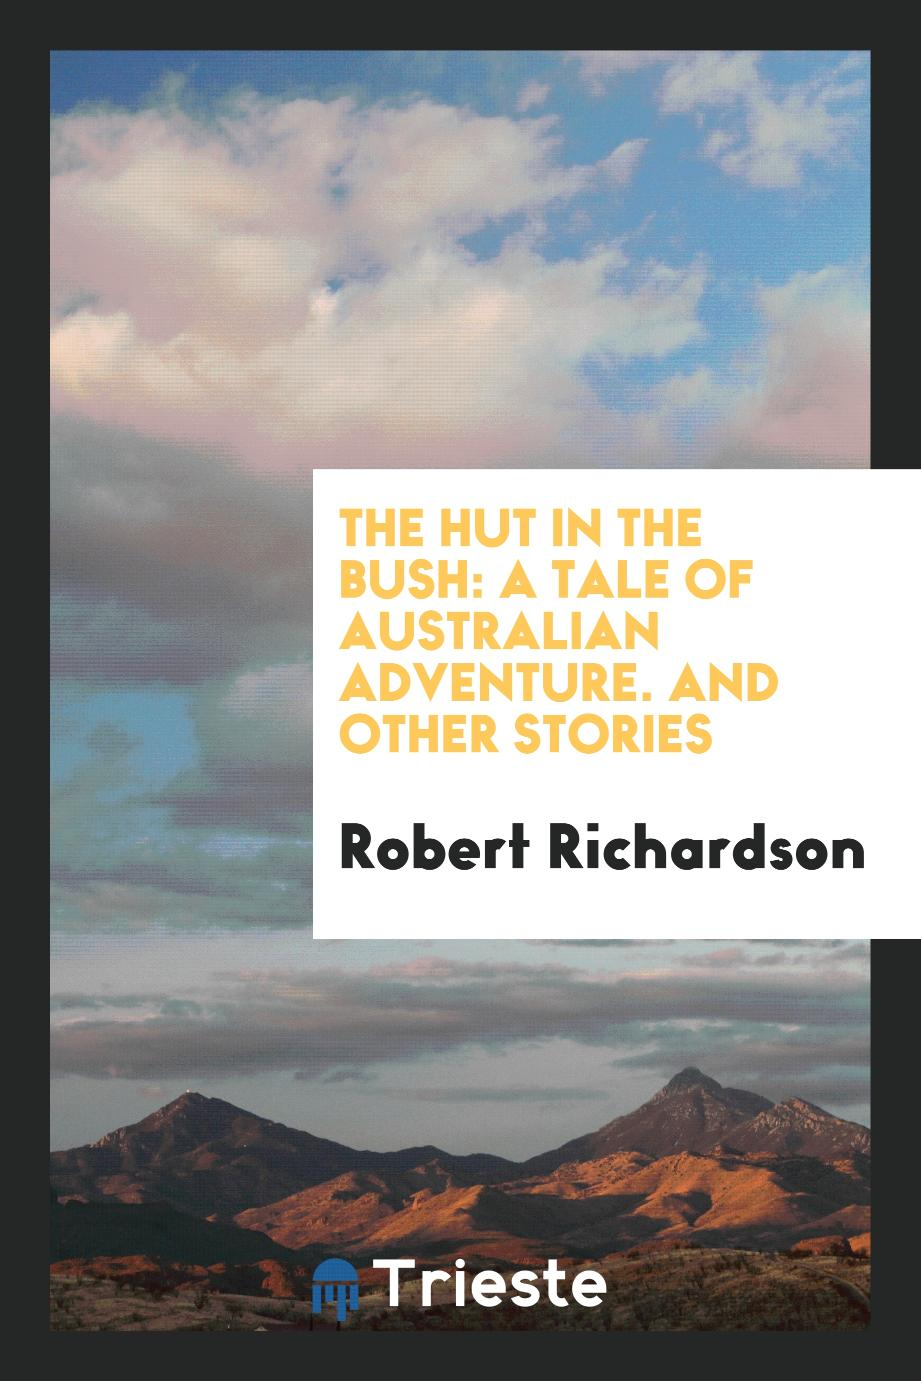 The Hut in the Bush: A Tale of Australian Adventure. And Other Stories